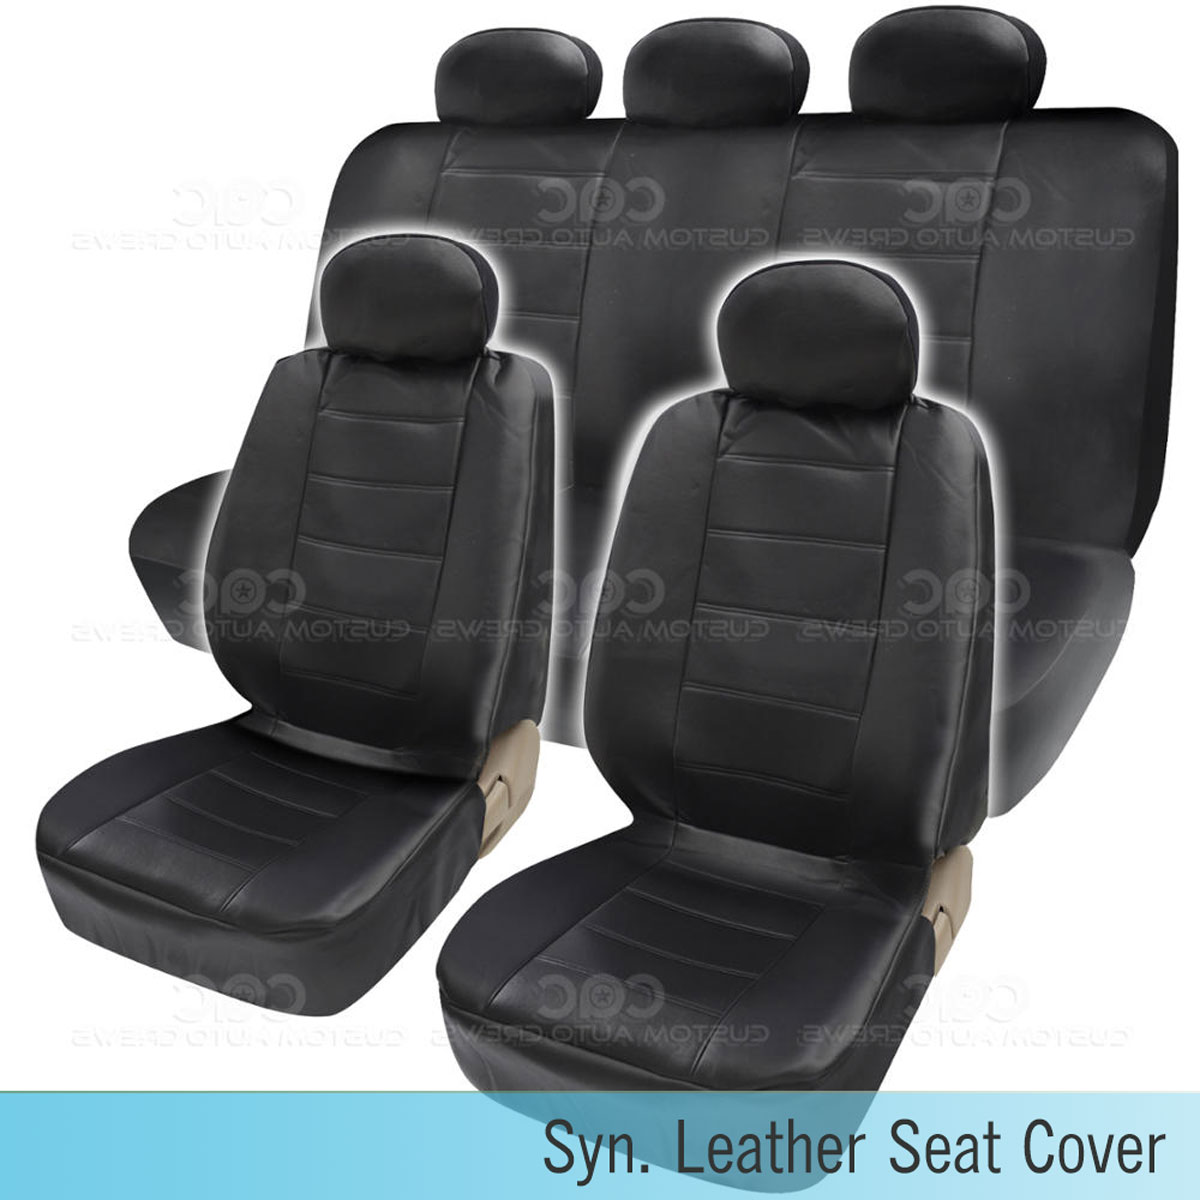 pu synthetic leather black seat cover car genuine leather feel front rear set ebay. Black Bedroom Furniture Sets. Home Design Ideas